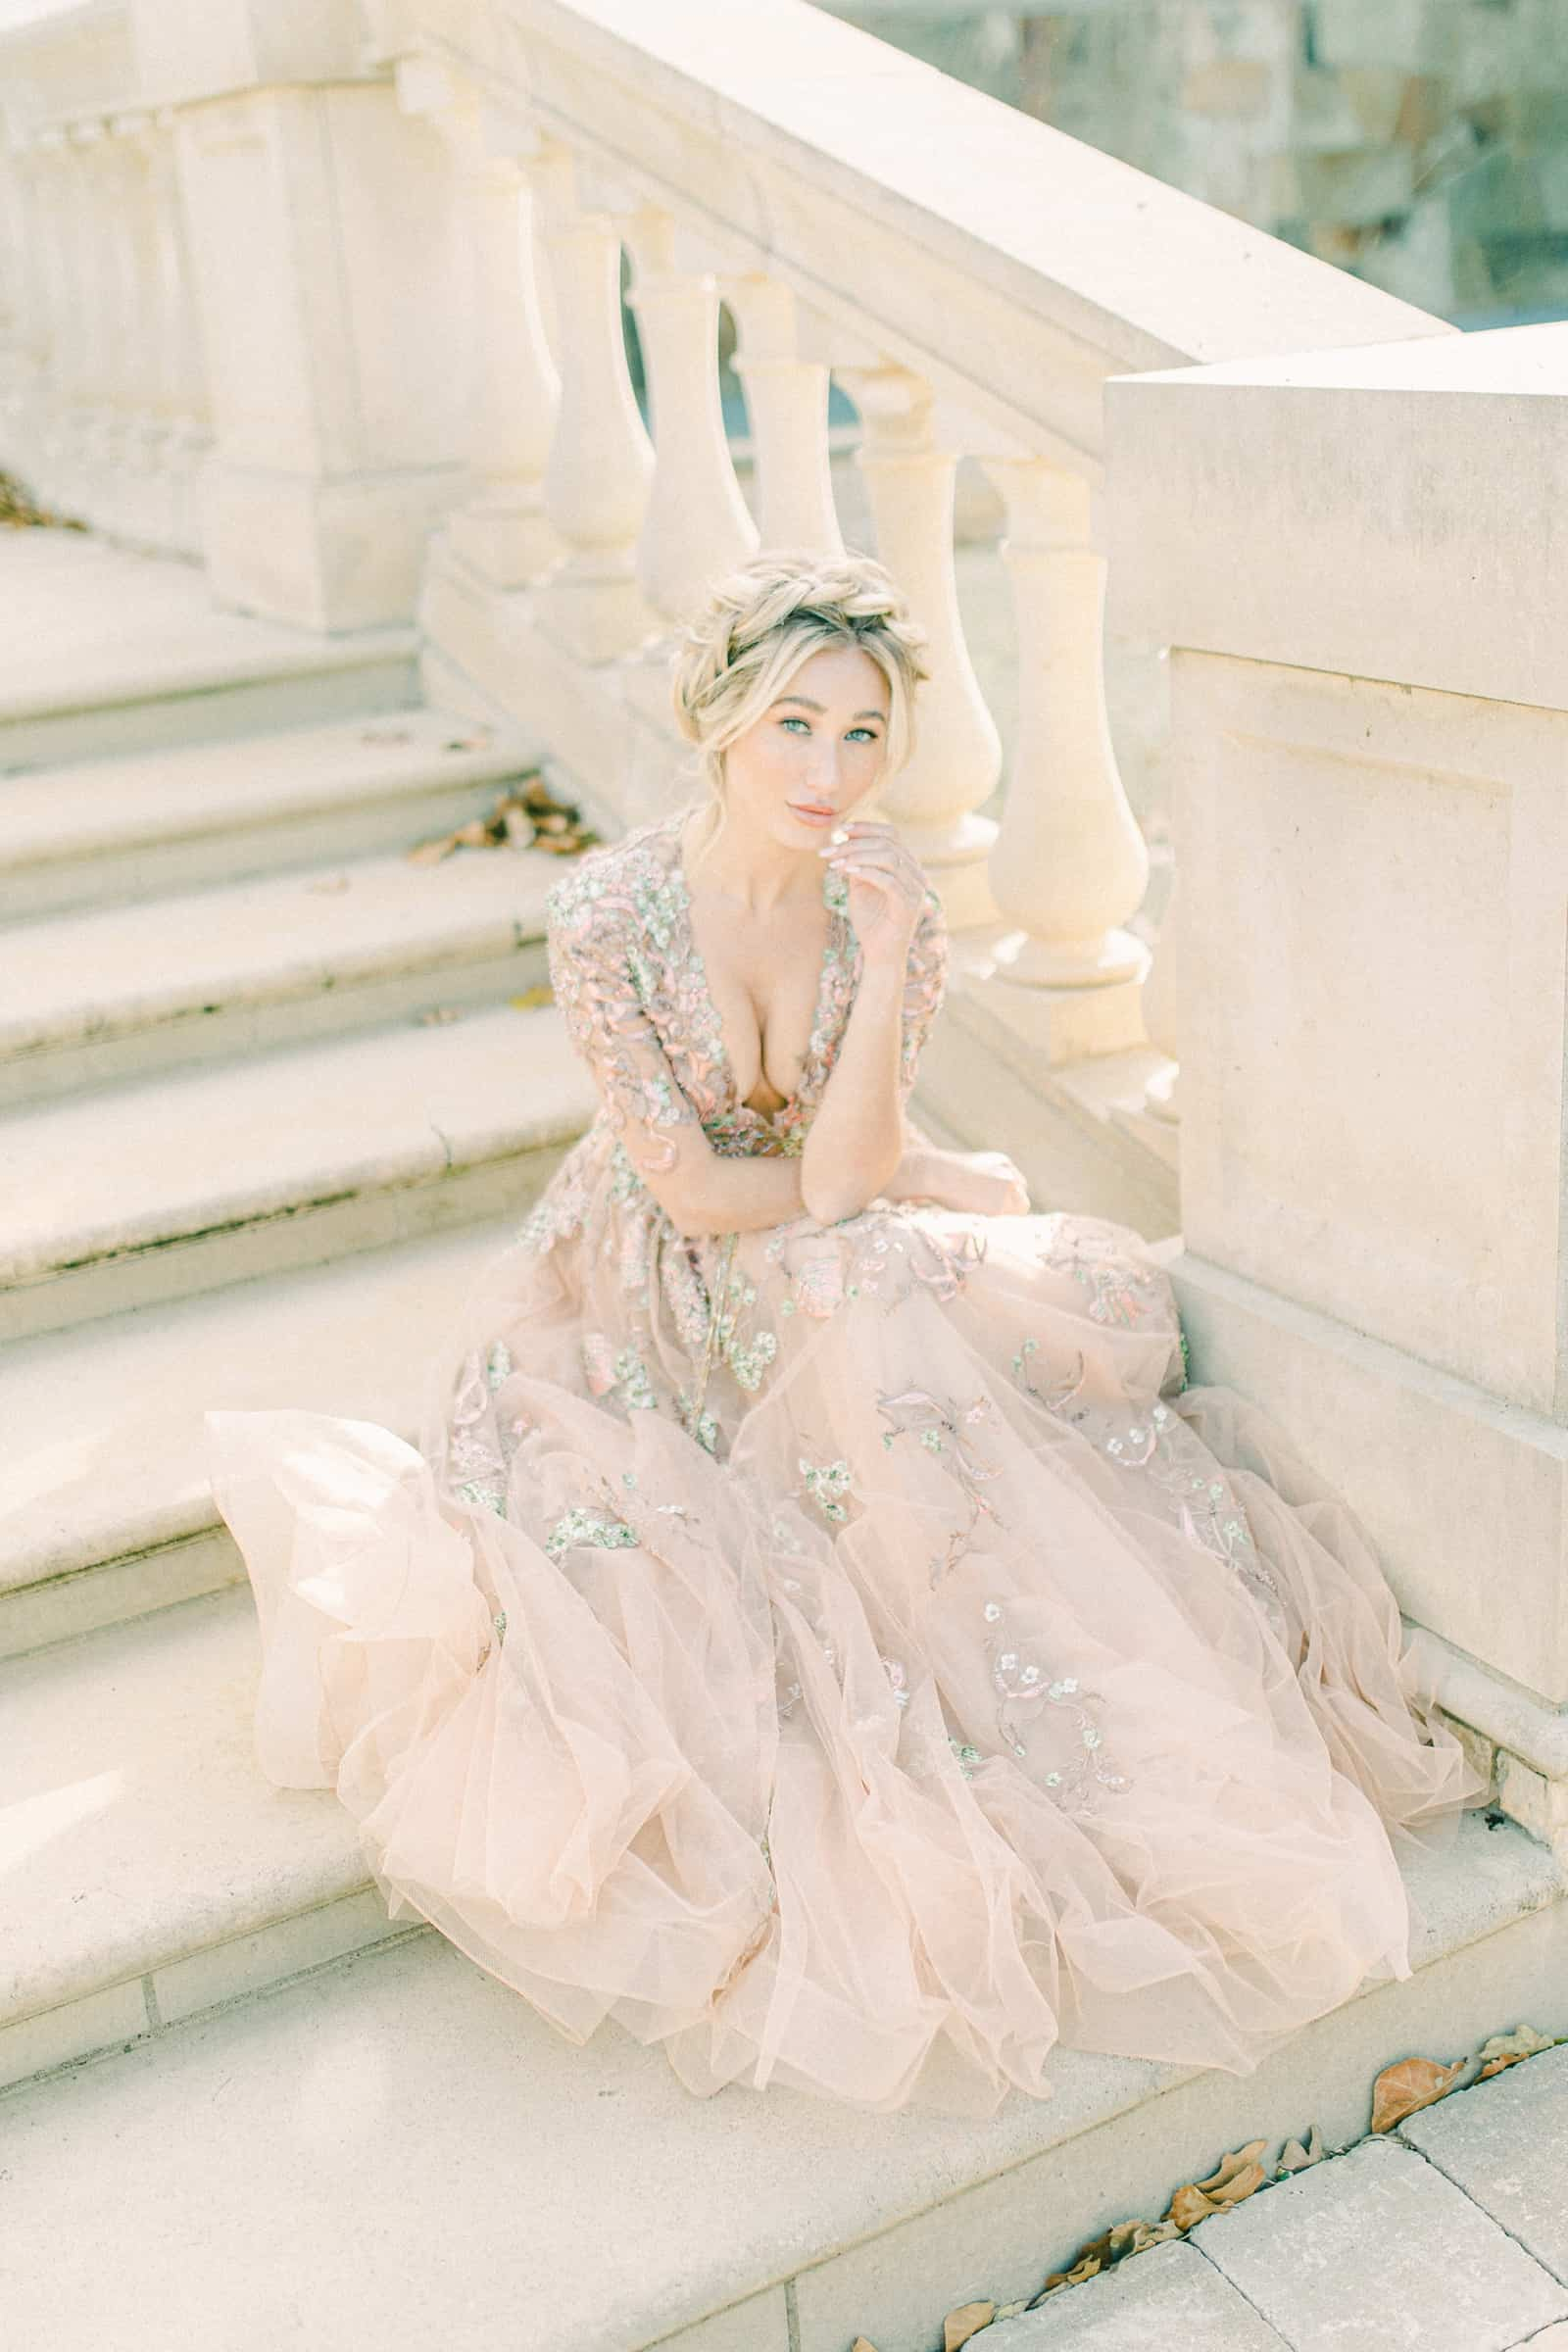 Bride wearing blush wedding dress awith floral embroidery and plunging neckline, YSA Makino couture wedding dress